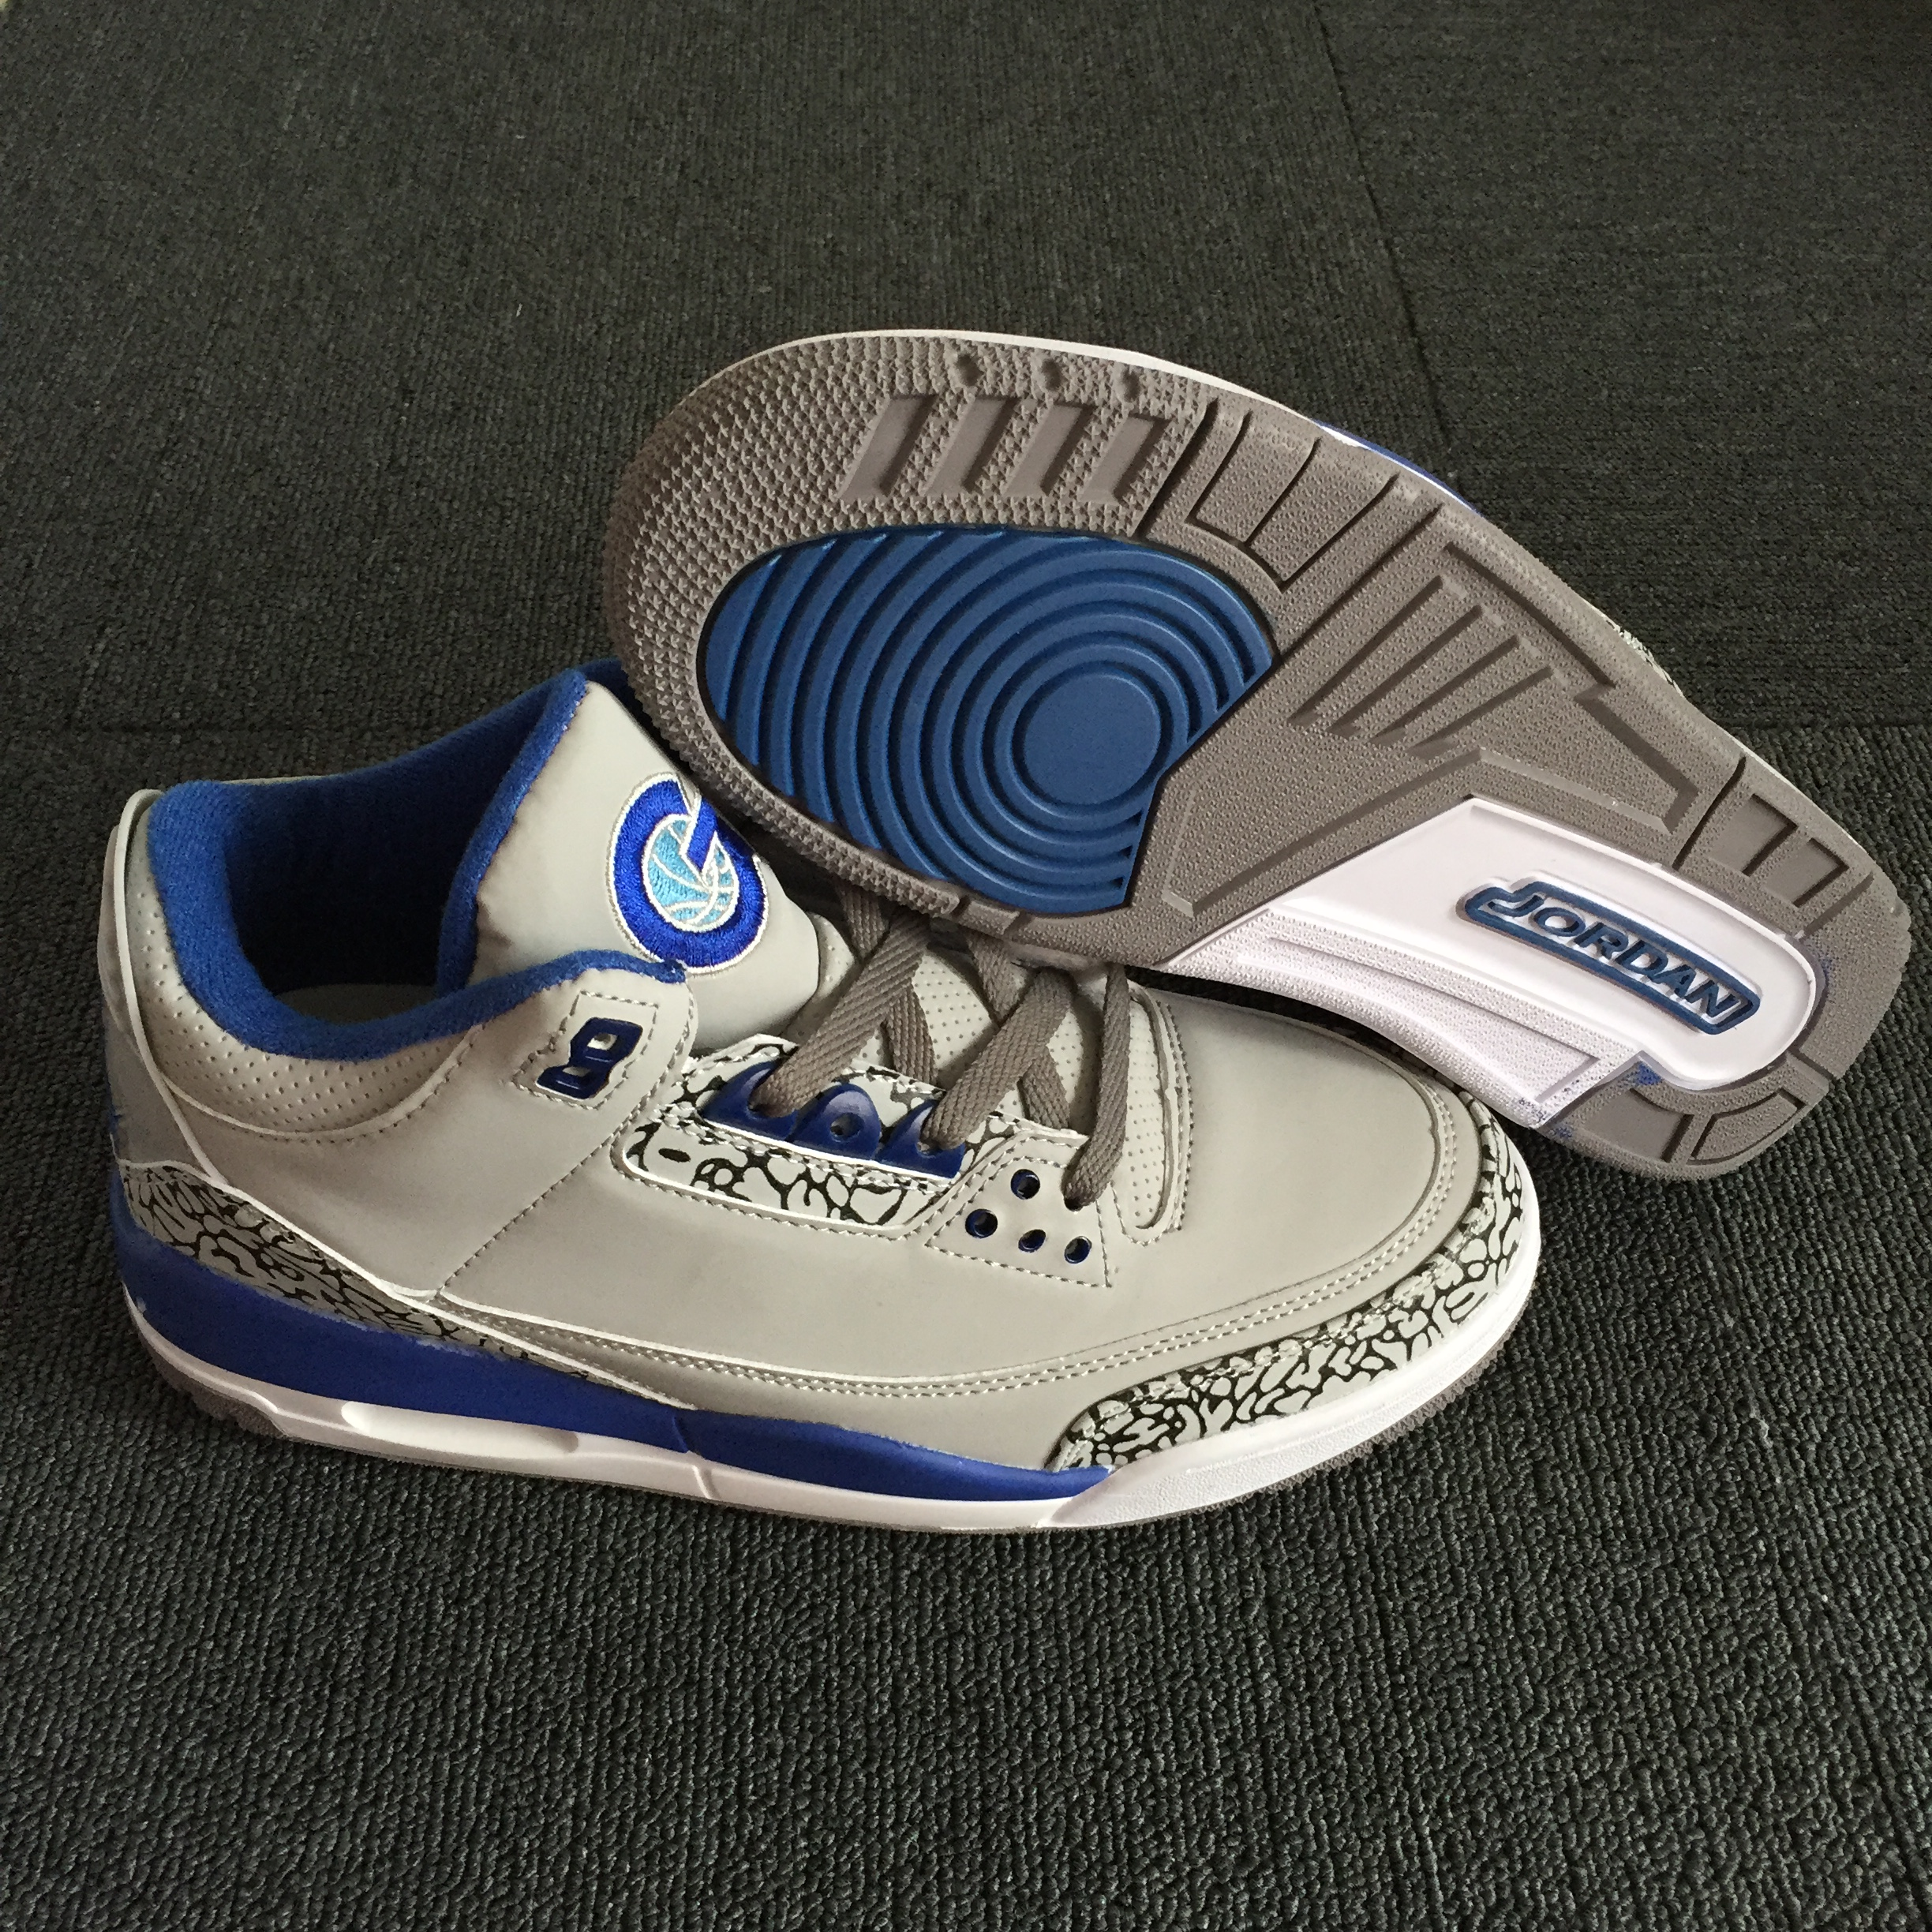 New Air Jordan 3 Retro Grey Blue Shoes